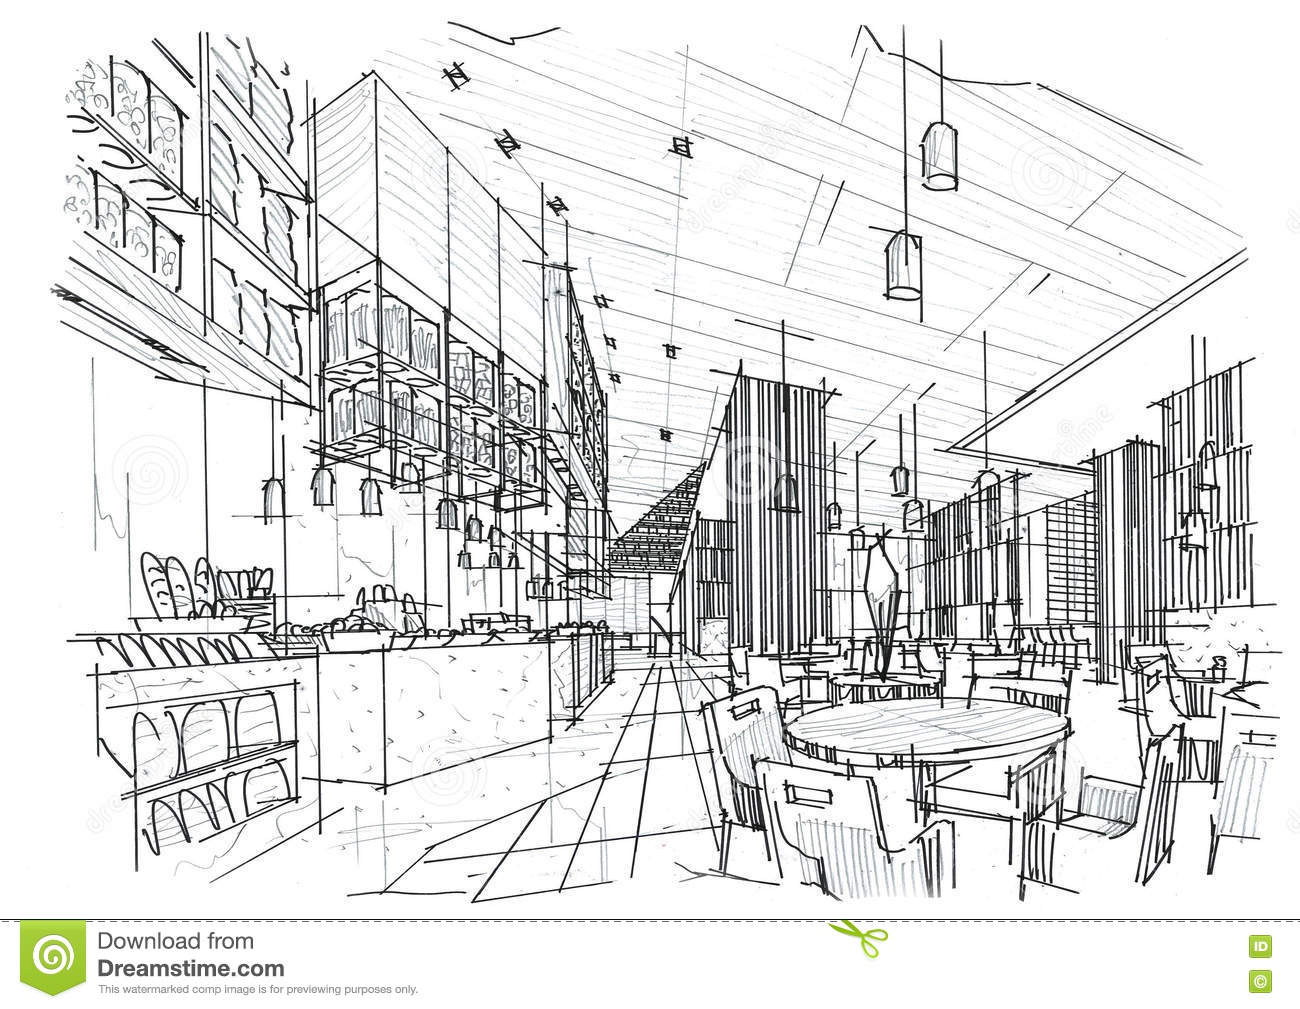 Sketch interior perspective all day restaurant black